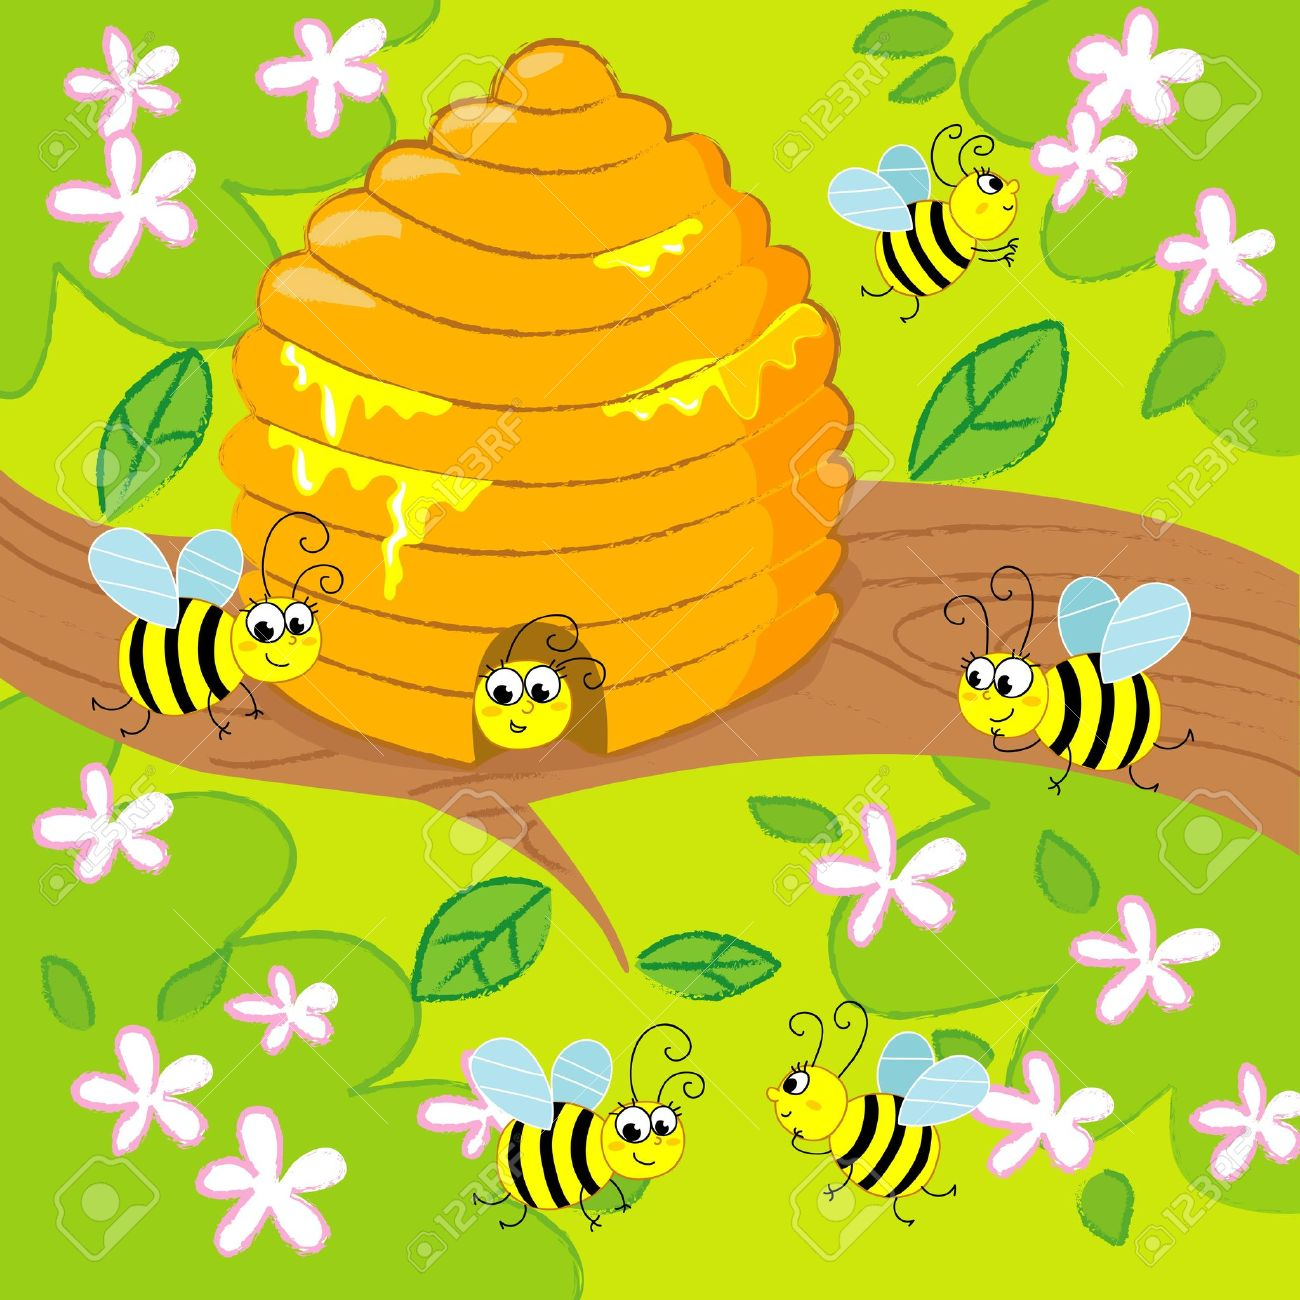 Cartoon beehive with flying happy bees in spring. image for kids. Stock Vector - 11102556